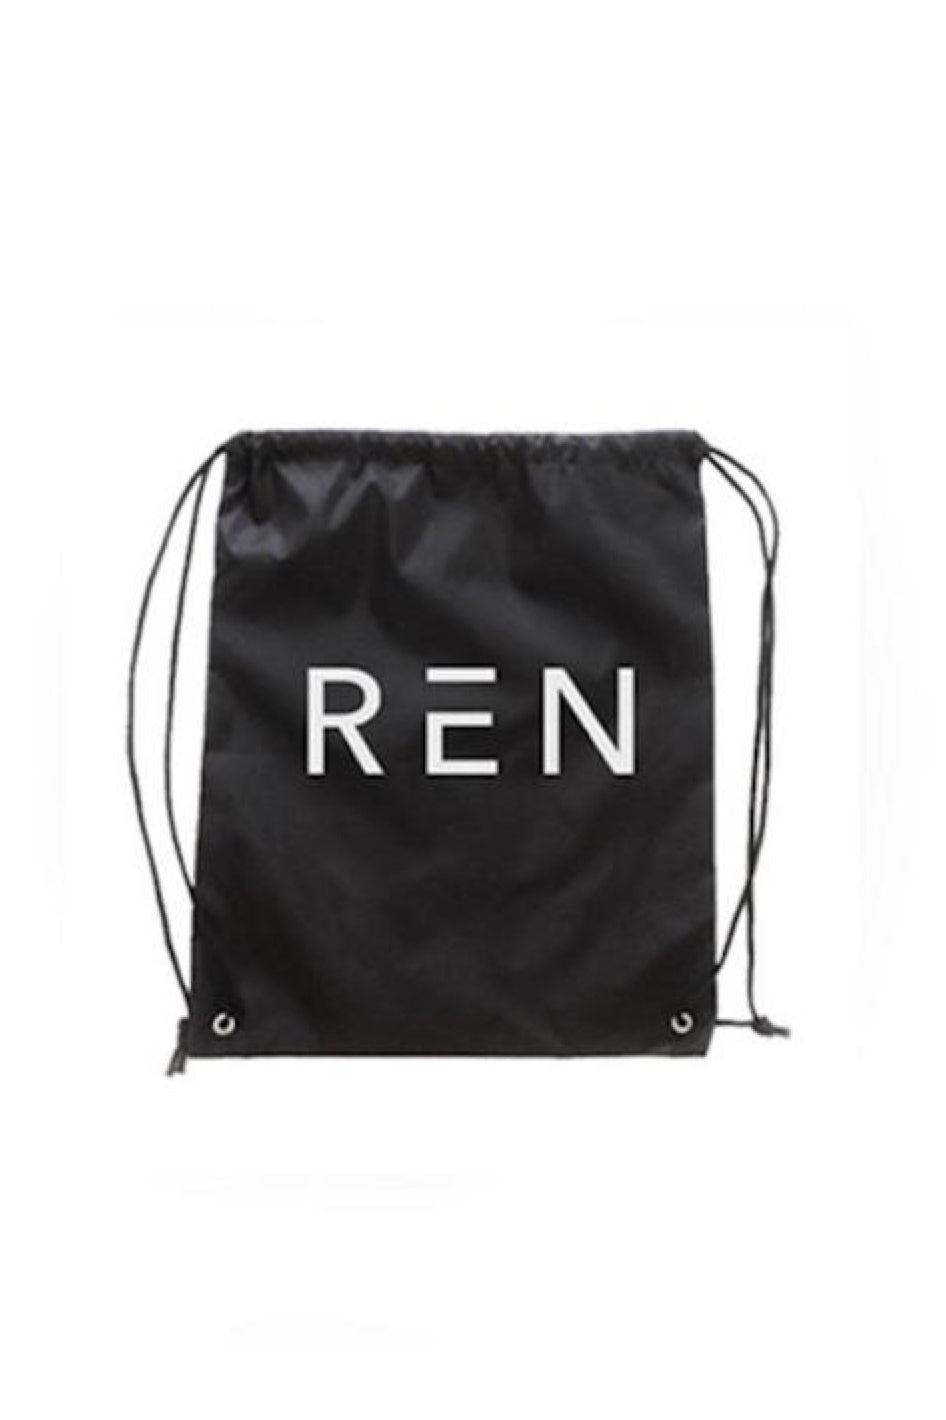 REN Gym Bag